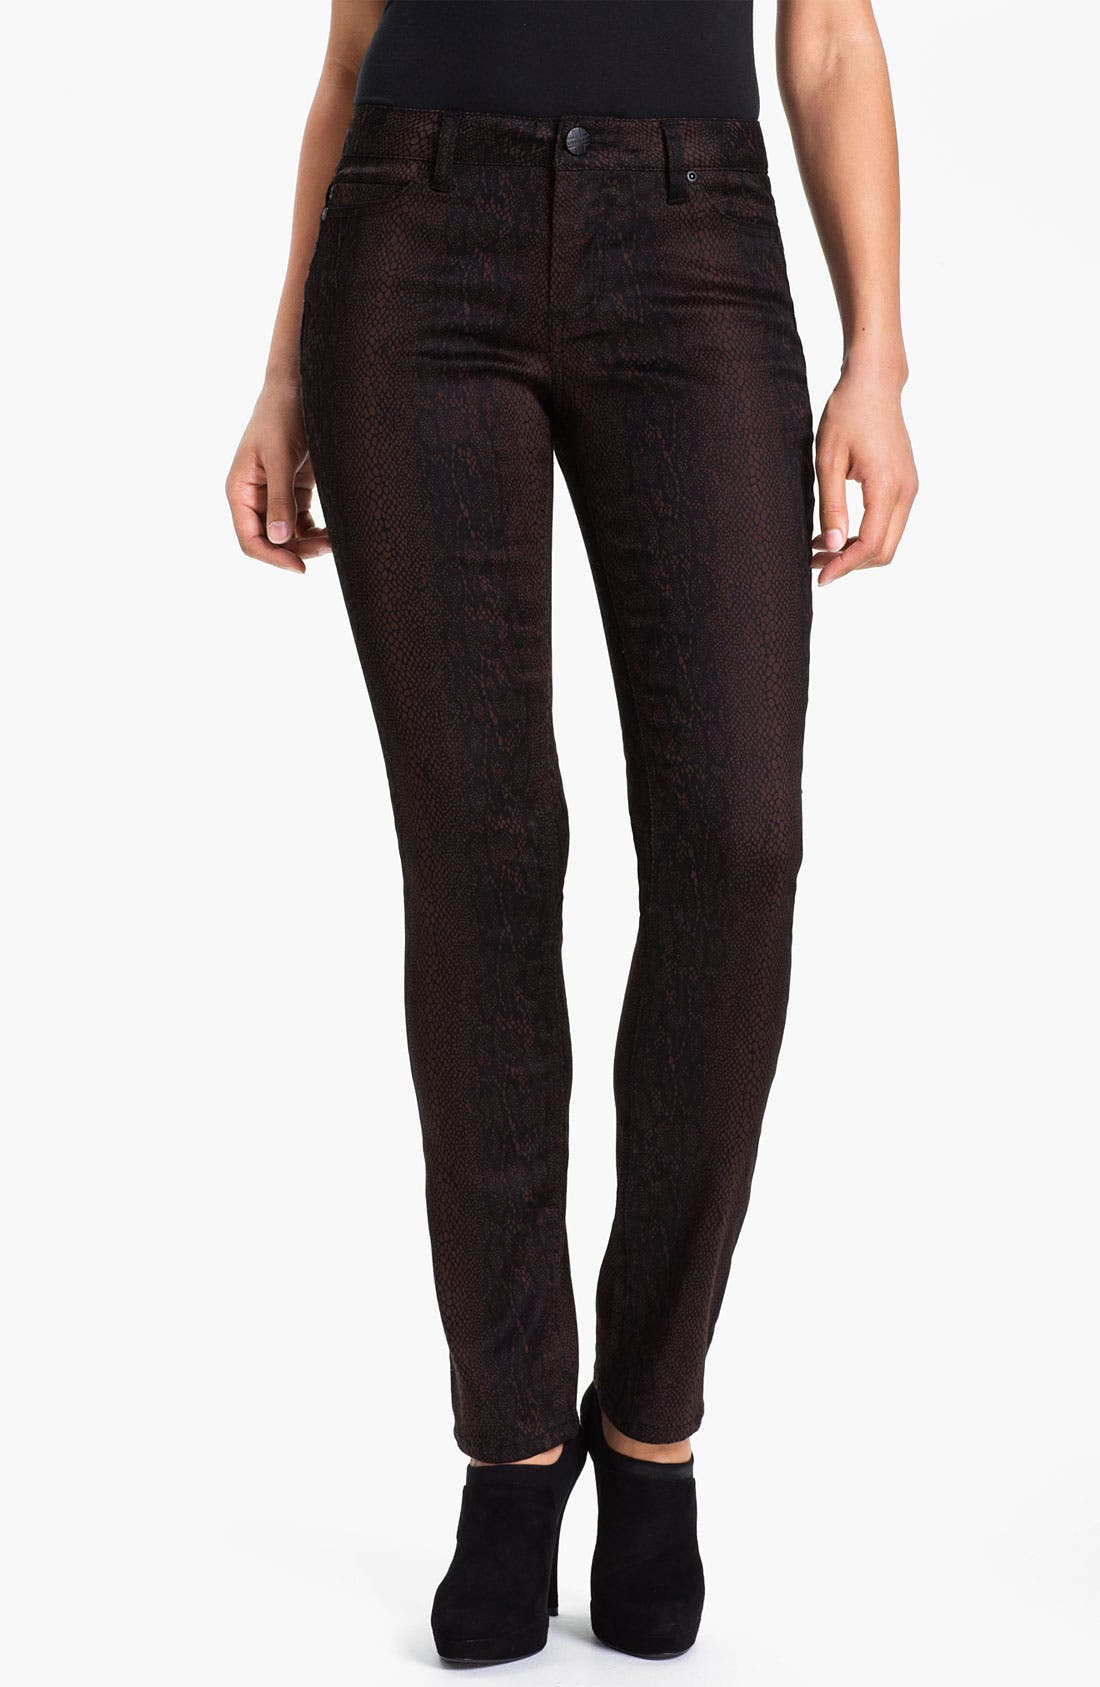 Alternate Image 1 Selected - Liverpool Jeans Company 'Sadie' Print Straight Leg Sateen Jeans (Petite) (Online Only)